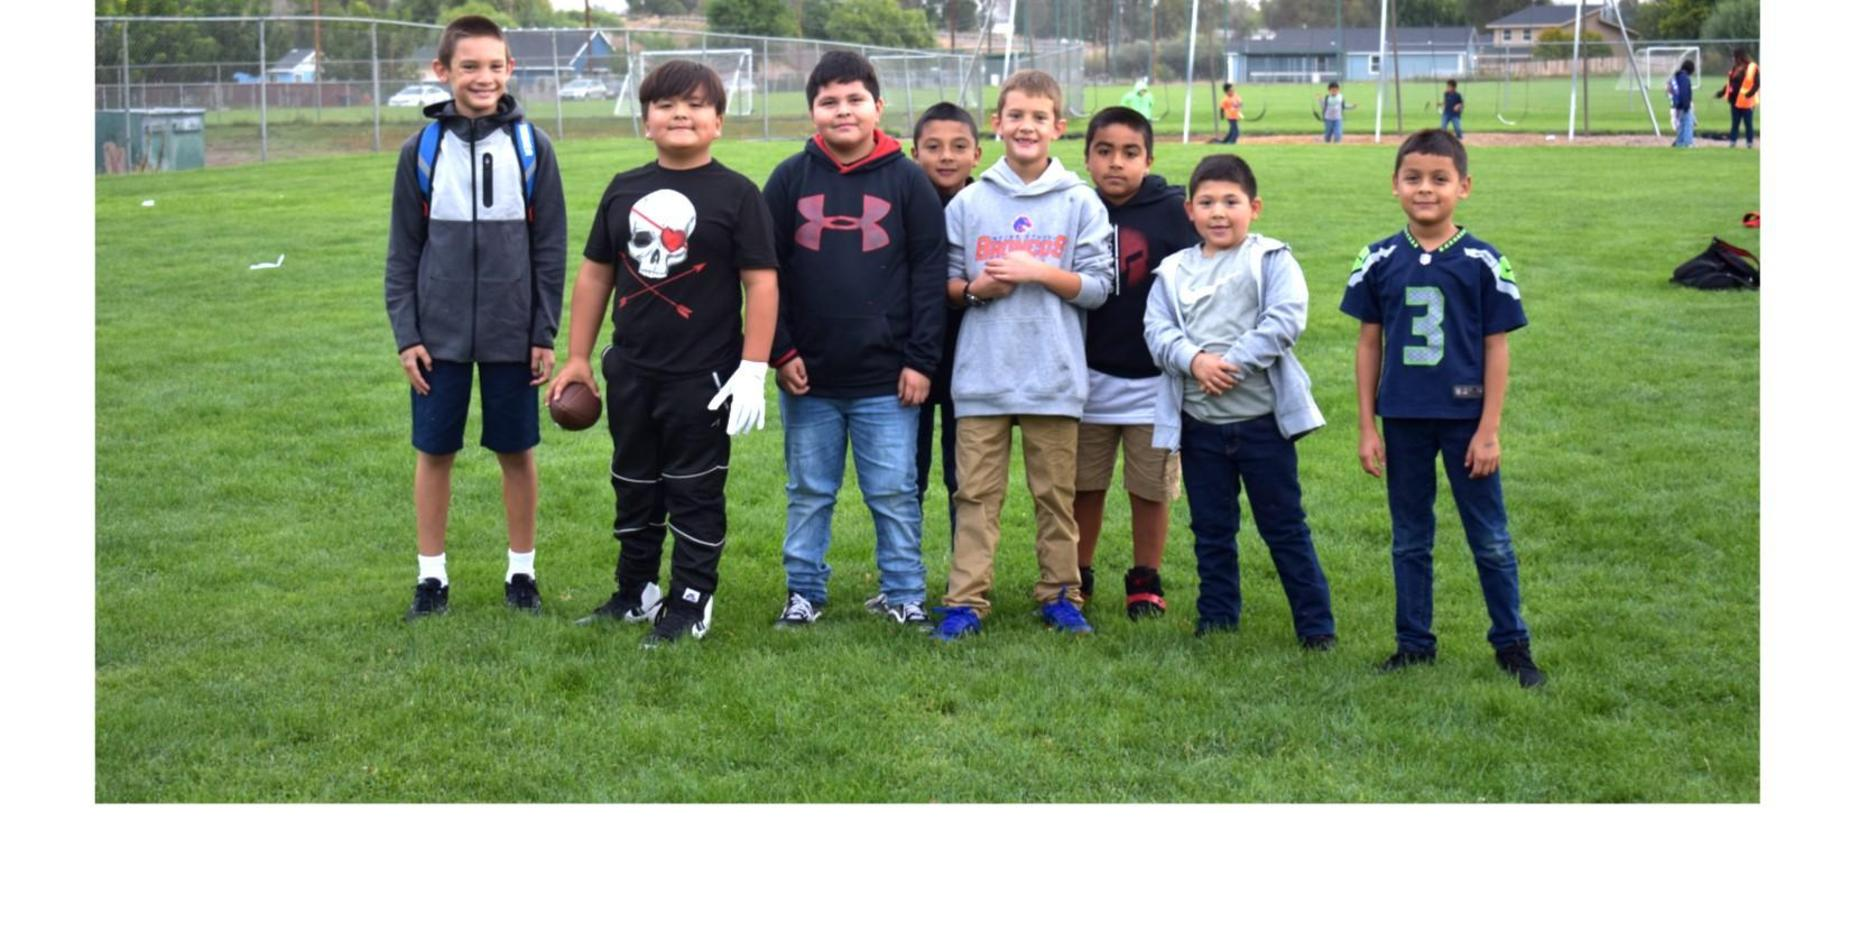 8 boys playing football at recess...and they are all smiling!